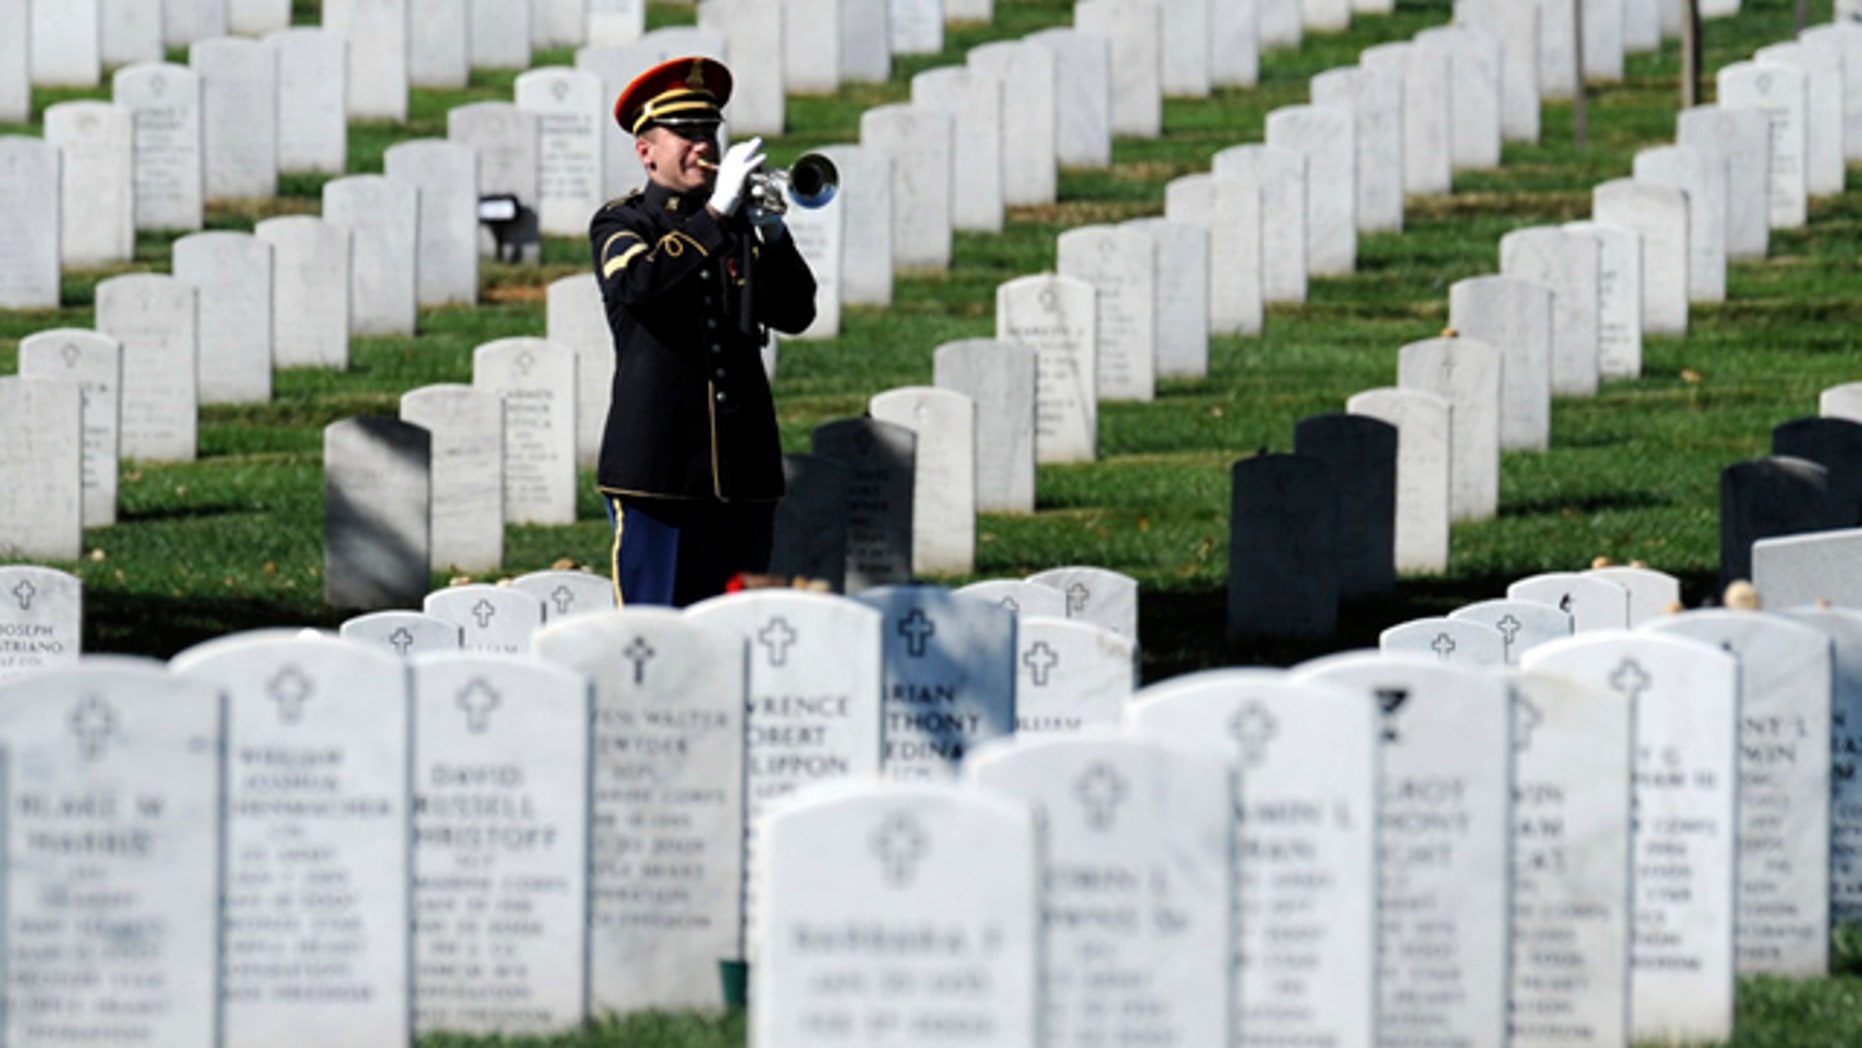 A bugler plays 'Taps' during the 2009 funeral for Army Spc. Stephen Mace at Arlington Cemetery in Arlington, Va. Due to a looming budget cut on Oct. 1, virtually all military funerals in New York state will use an electronic bugle instead of a live performance. (AP)